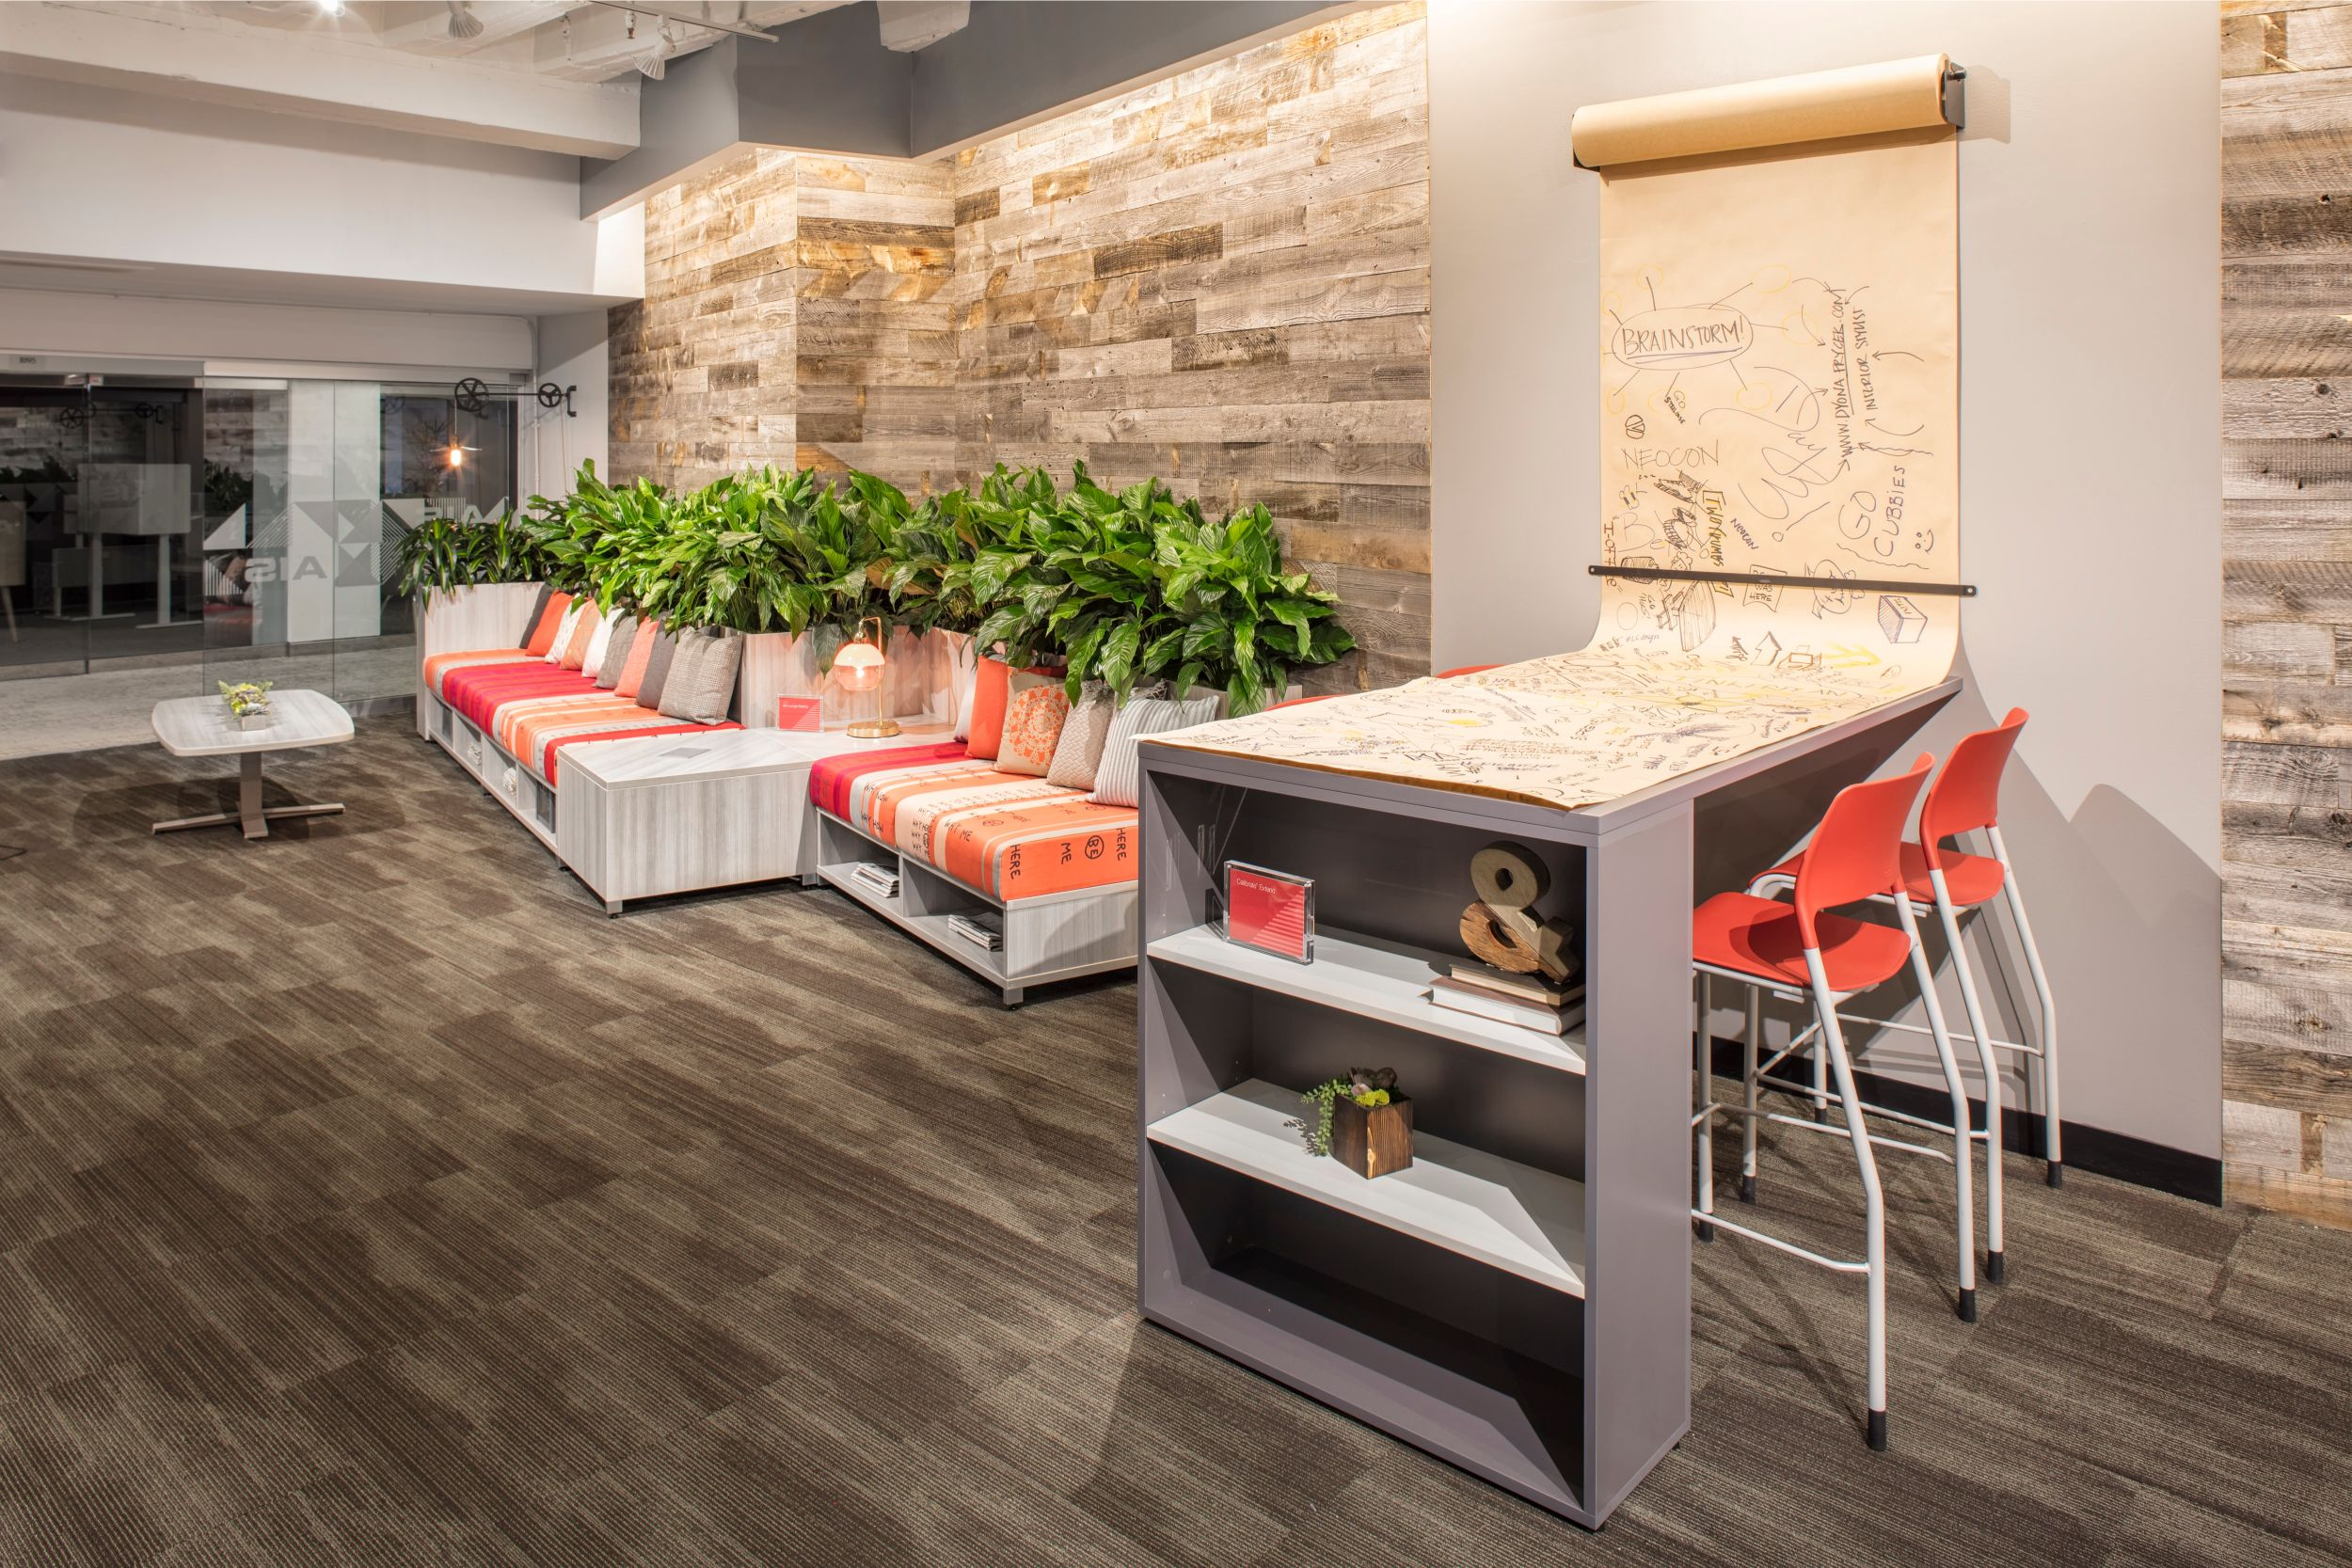 lb-lounge-with-custom-table-neocon-17_md